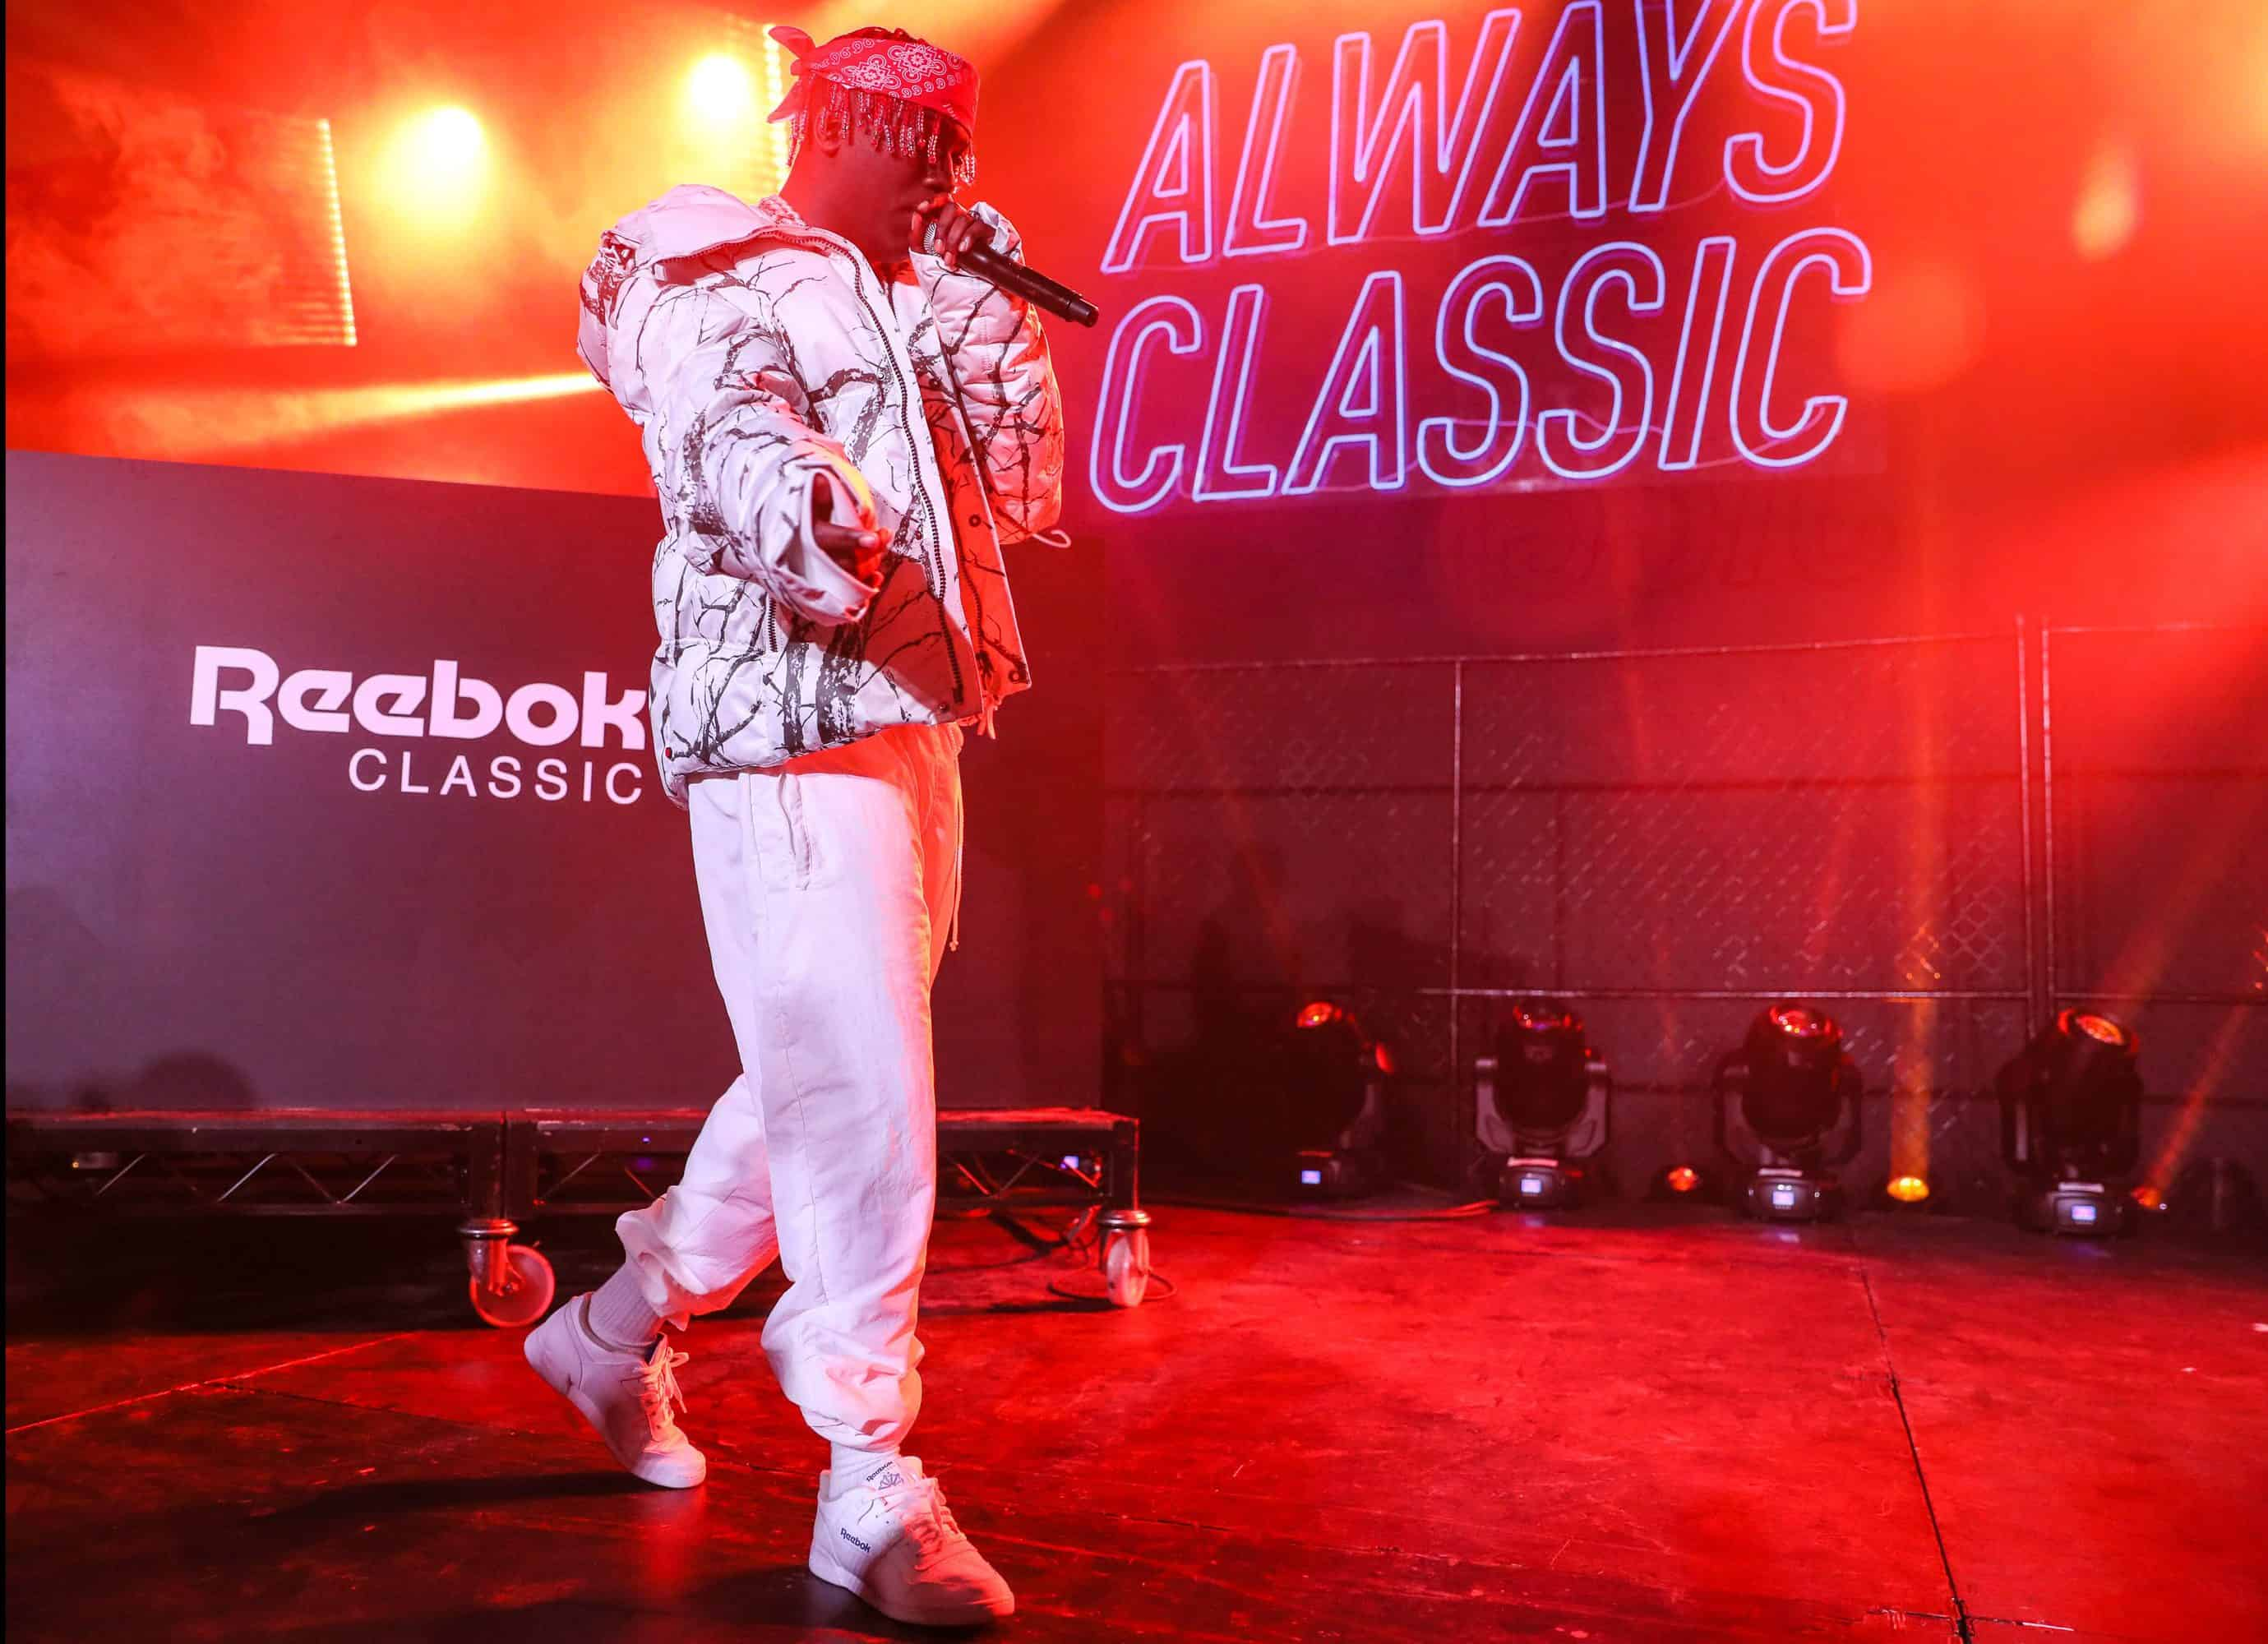 887137a6608 (To Become Public at Client Request) Breaking Classic   1 Night with Lil  Yachty   The Sailing Team